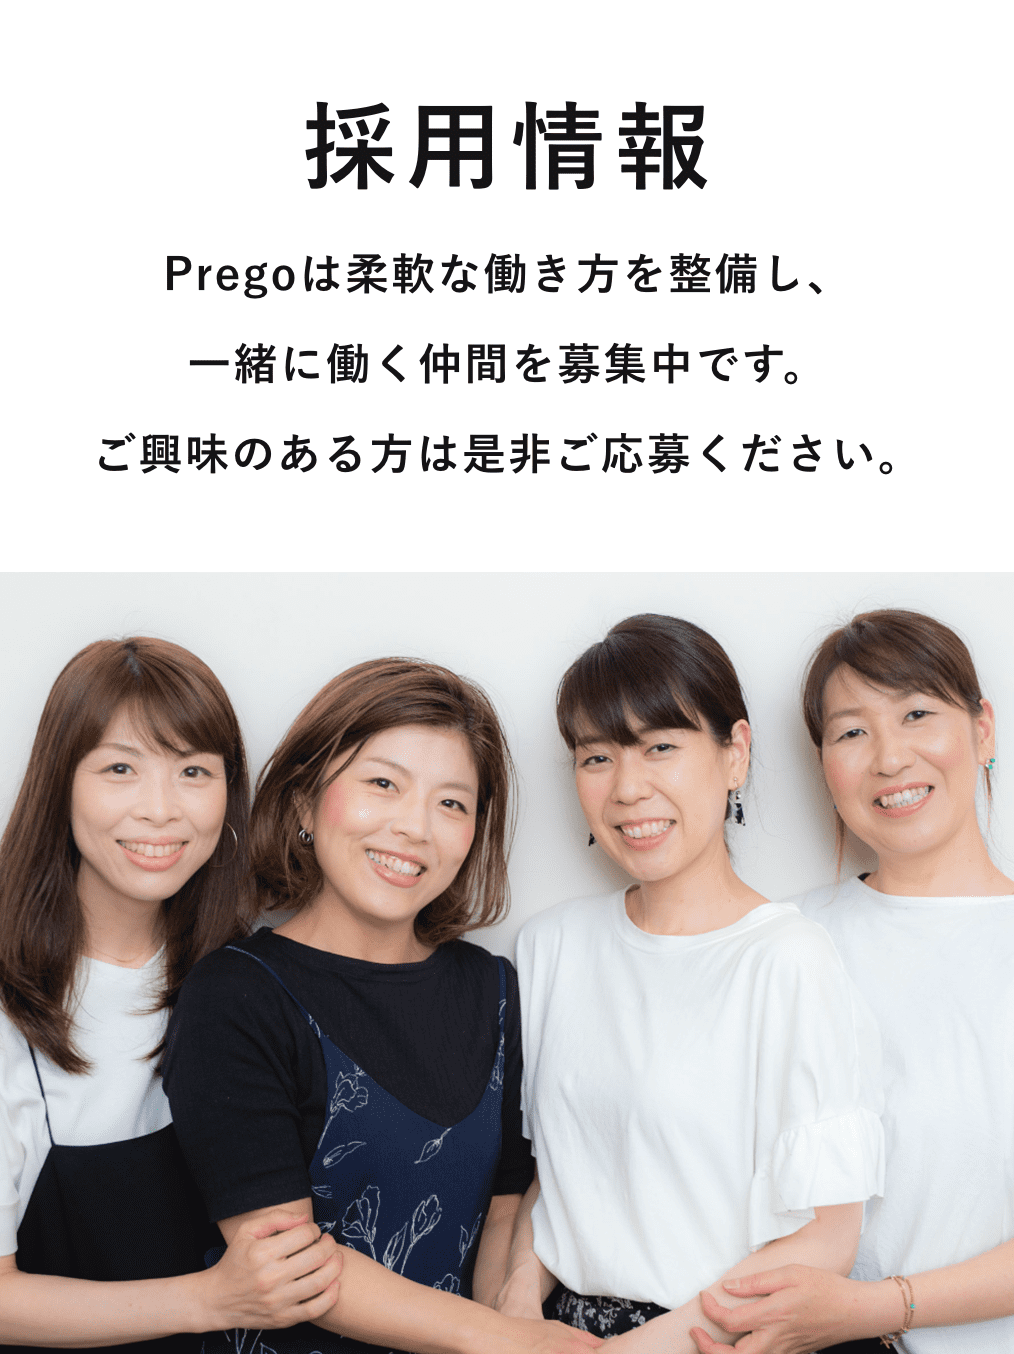 hair prego(ヘアープレゴ)採用情報